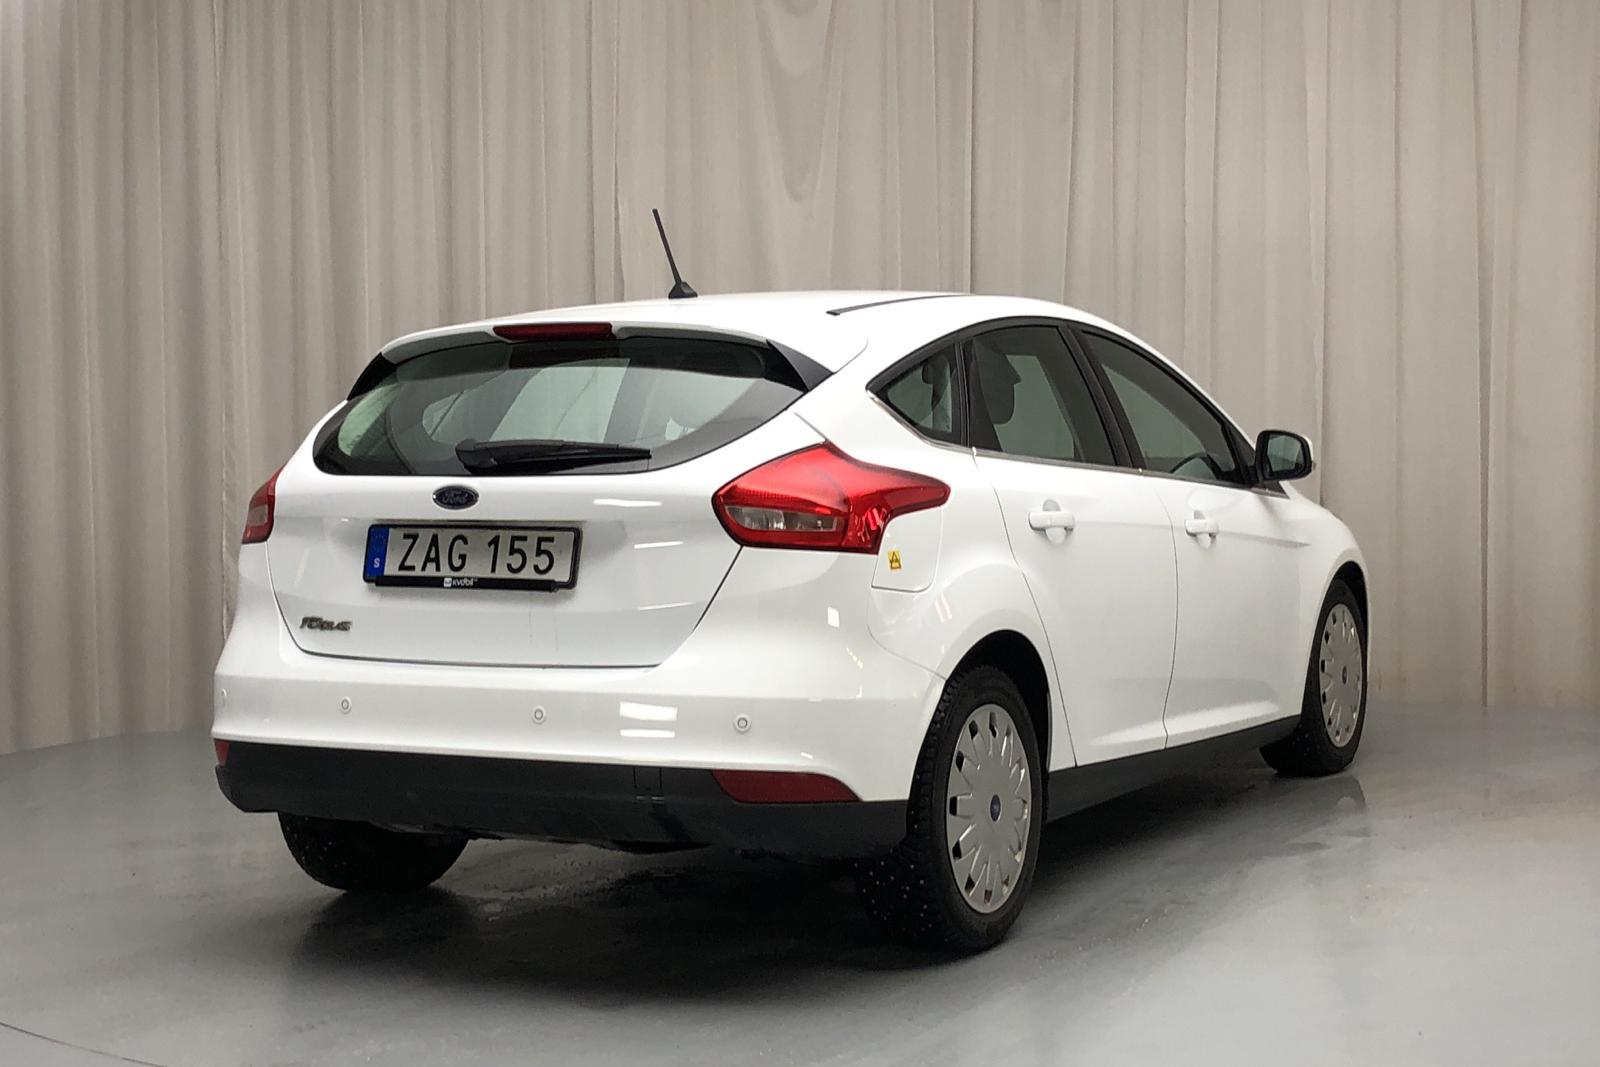 Ford Focus 1.5 TDCi ECOnetic 5dr (105hk) - 25 030 km - Manual - white - 2018